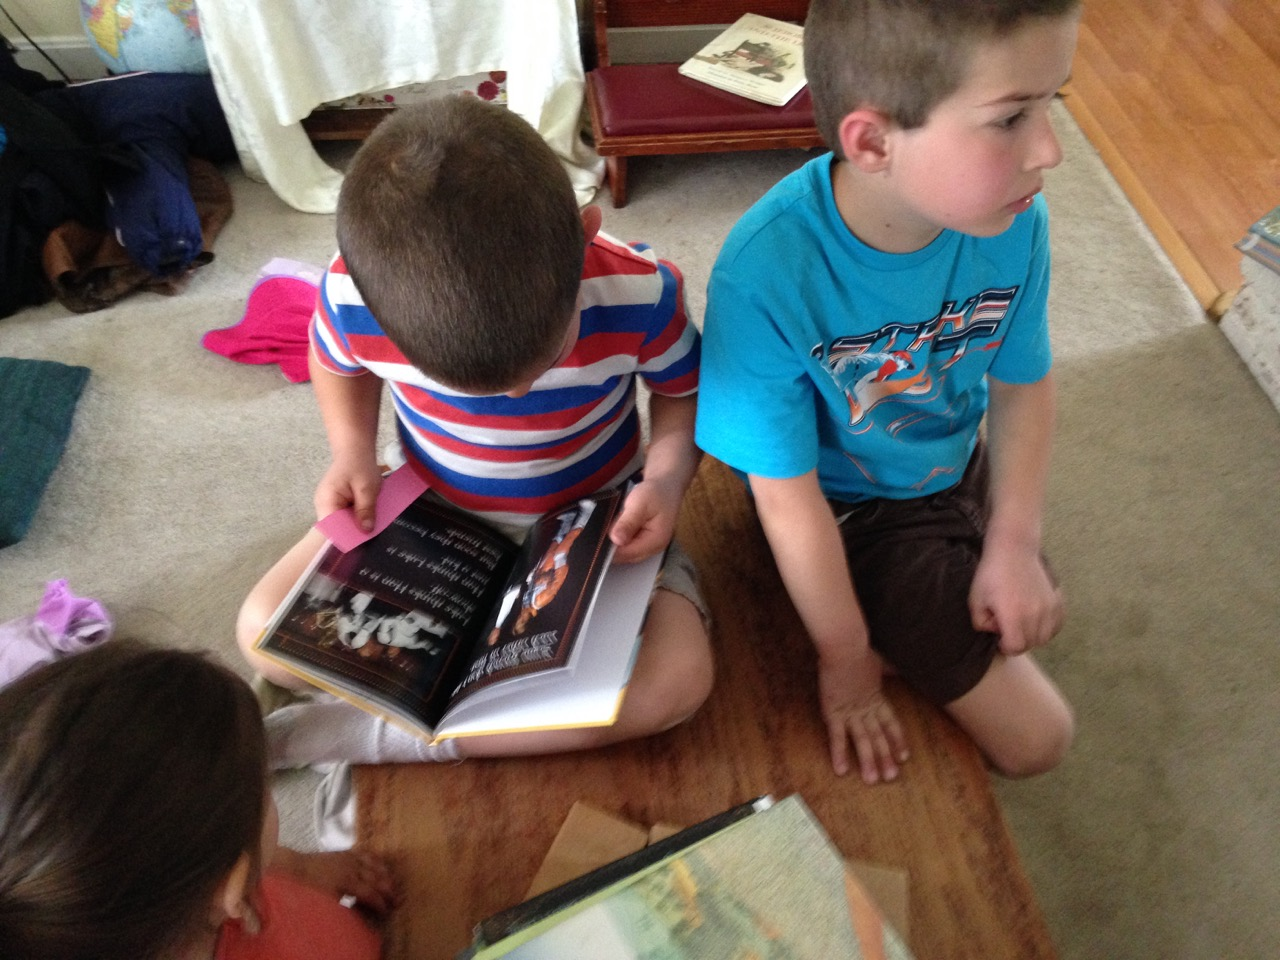 Anthony reads me the Star Wars book he got from the library.